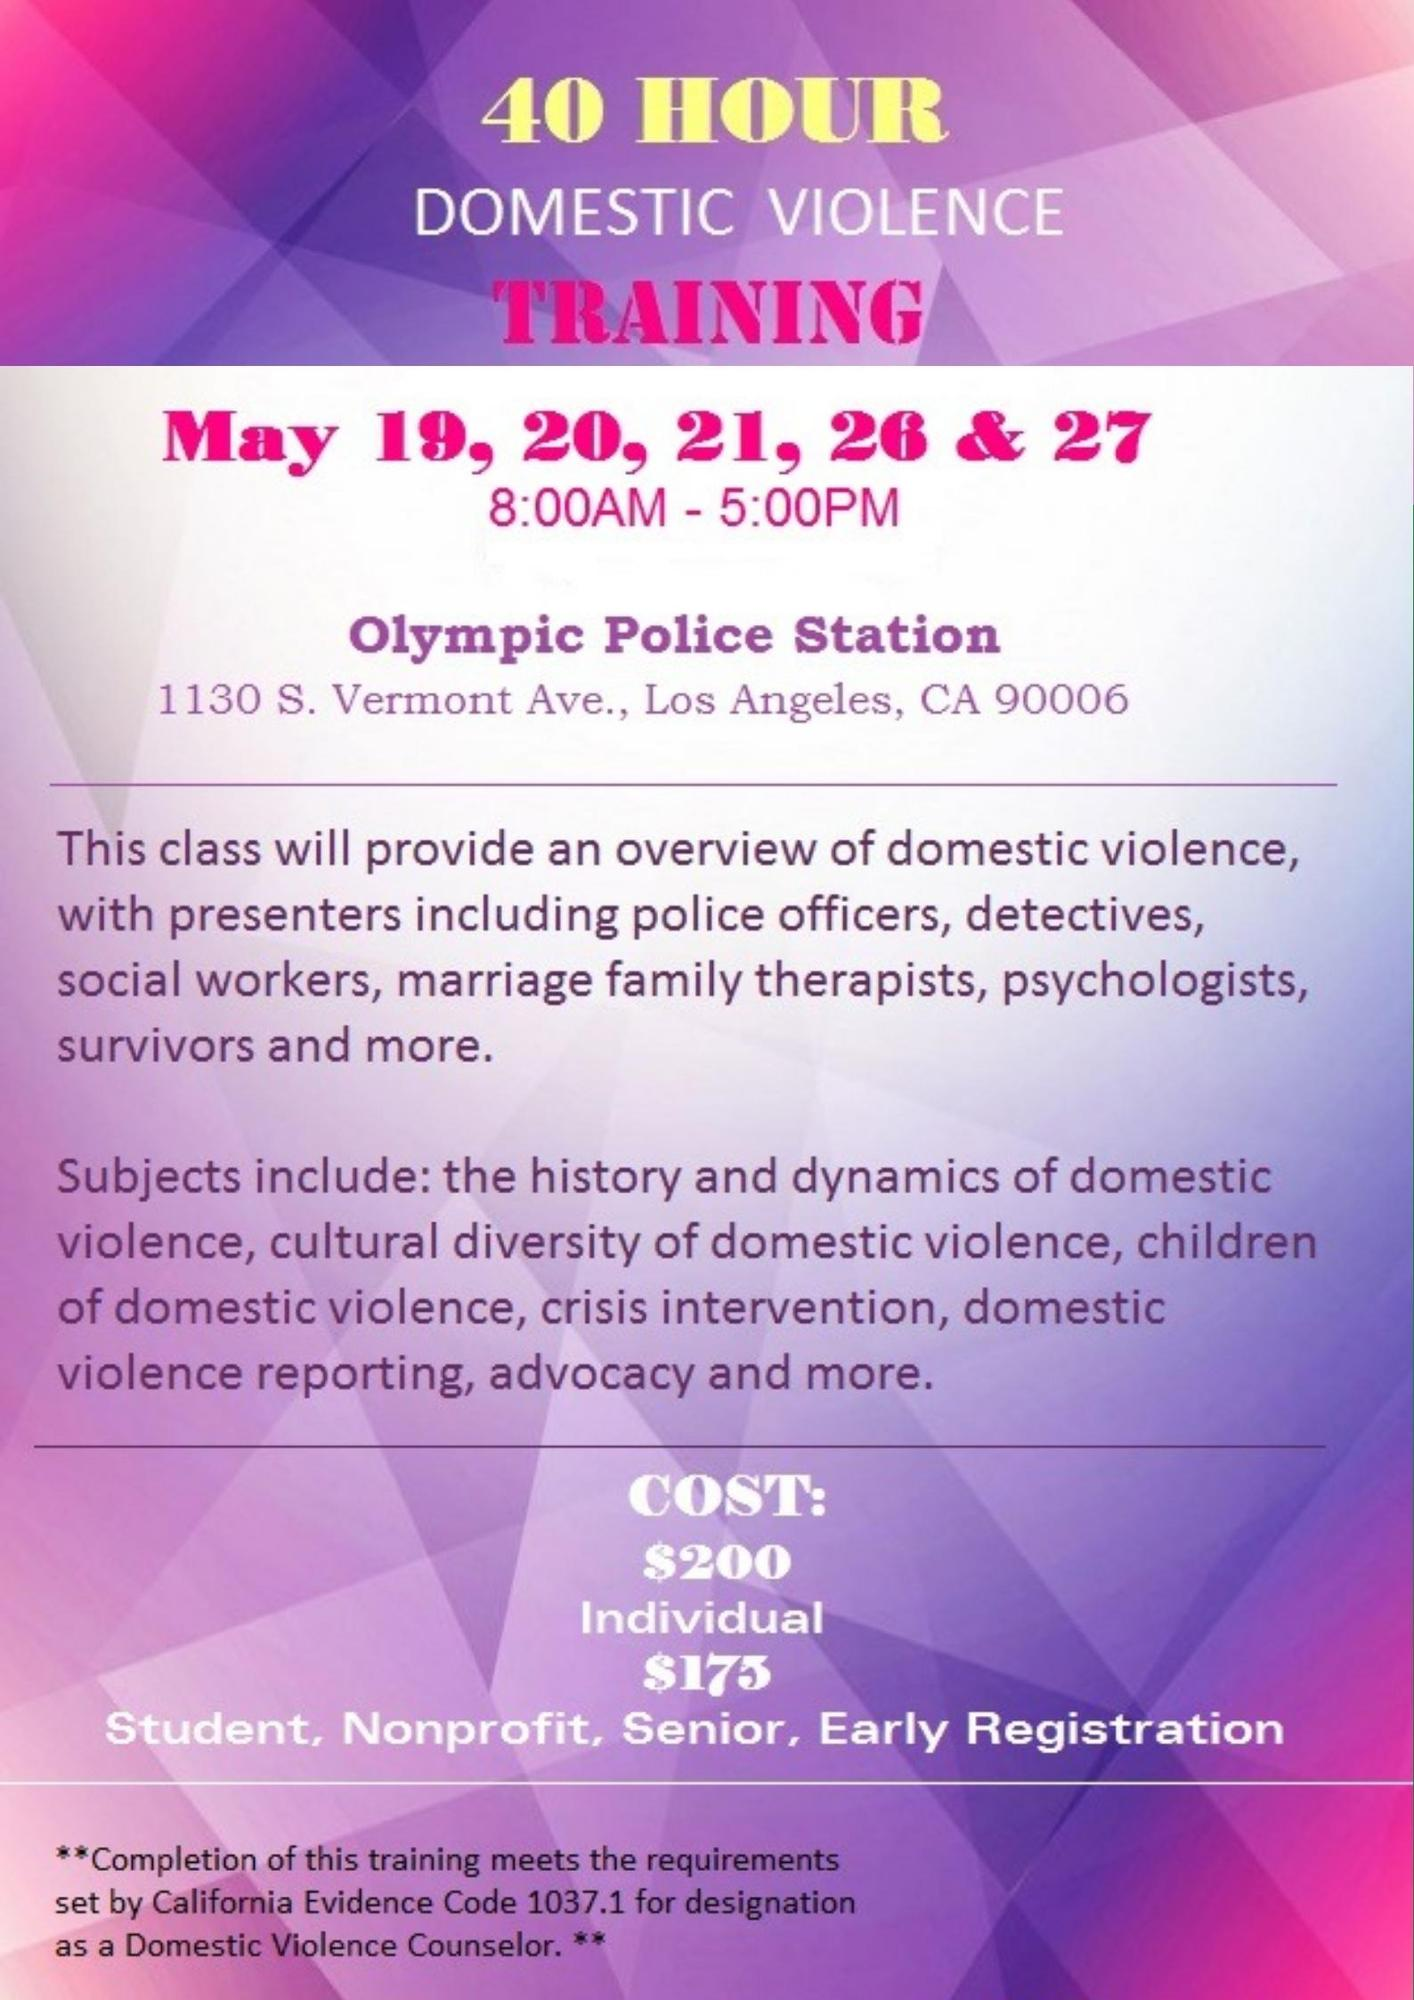 40 Hour Domestic Violence Training In Los Angeles Tickets In Los